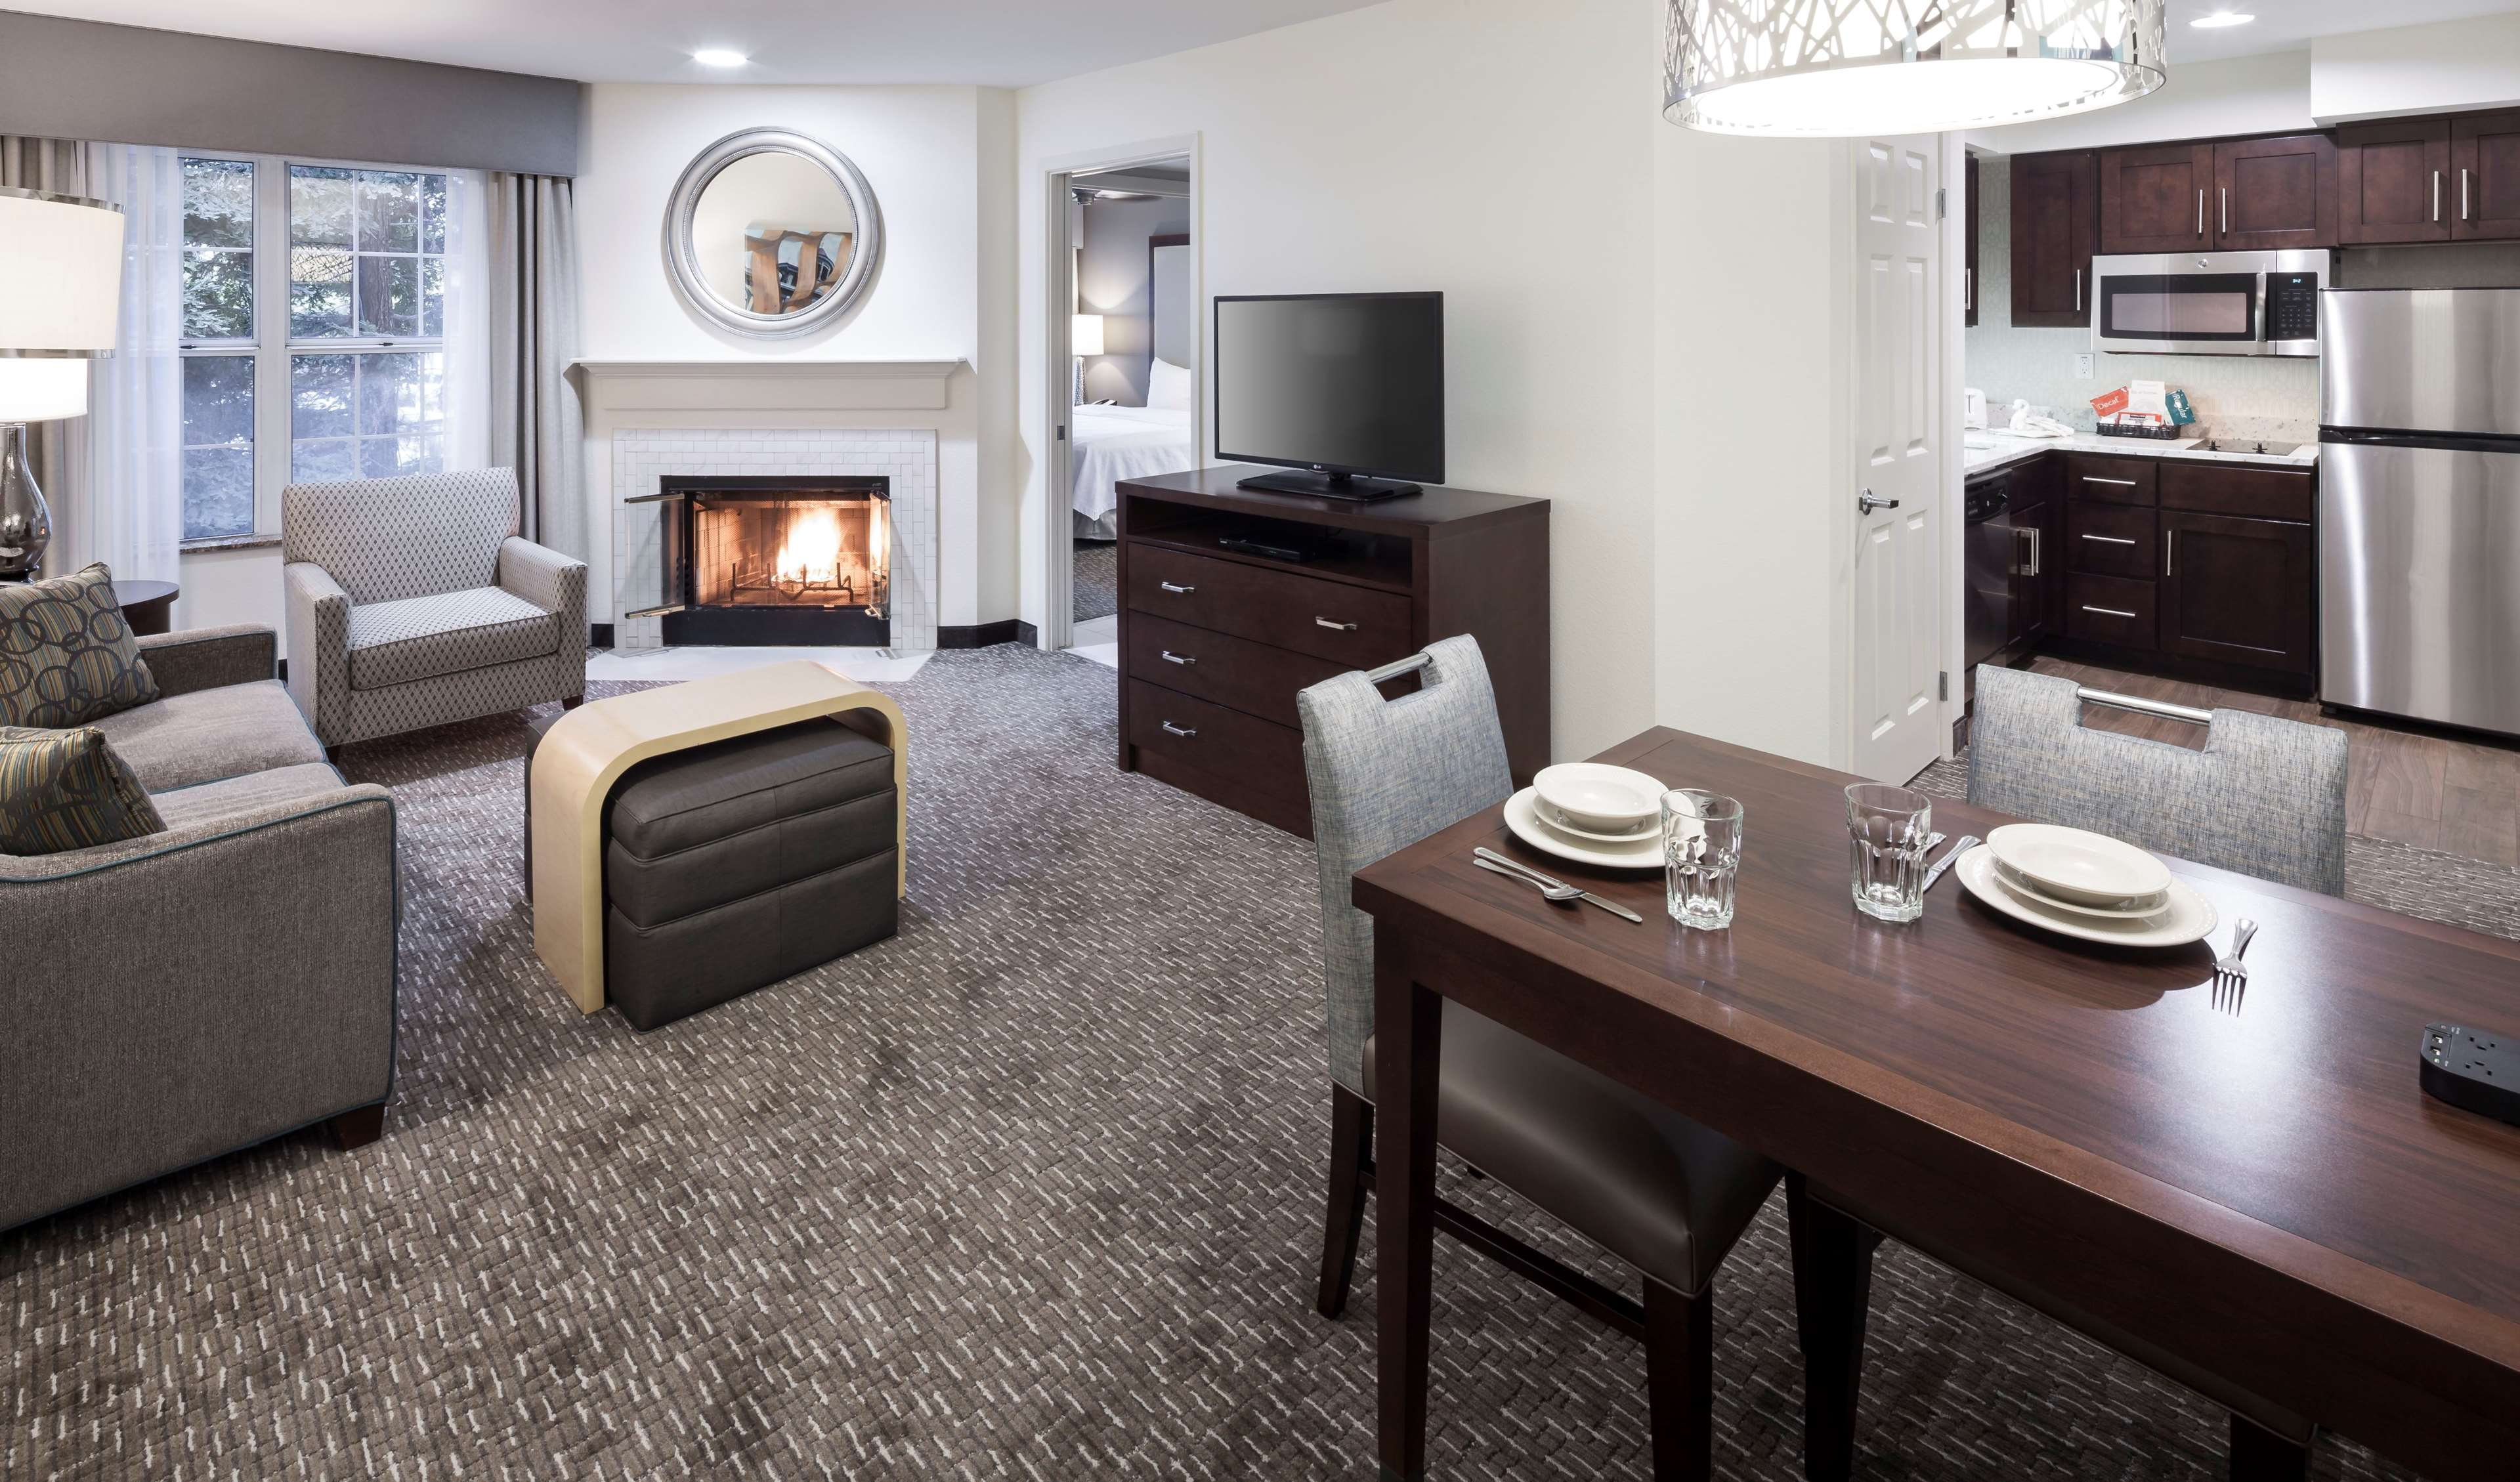 Homewood Suites by Hilton San Jose Airport-Silicon Valley image 26